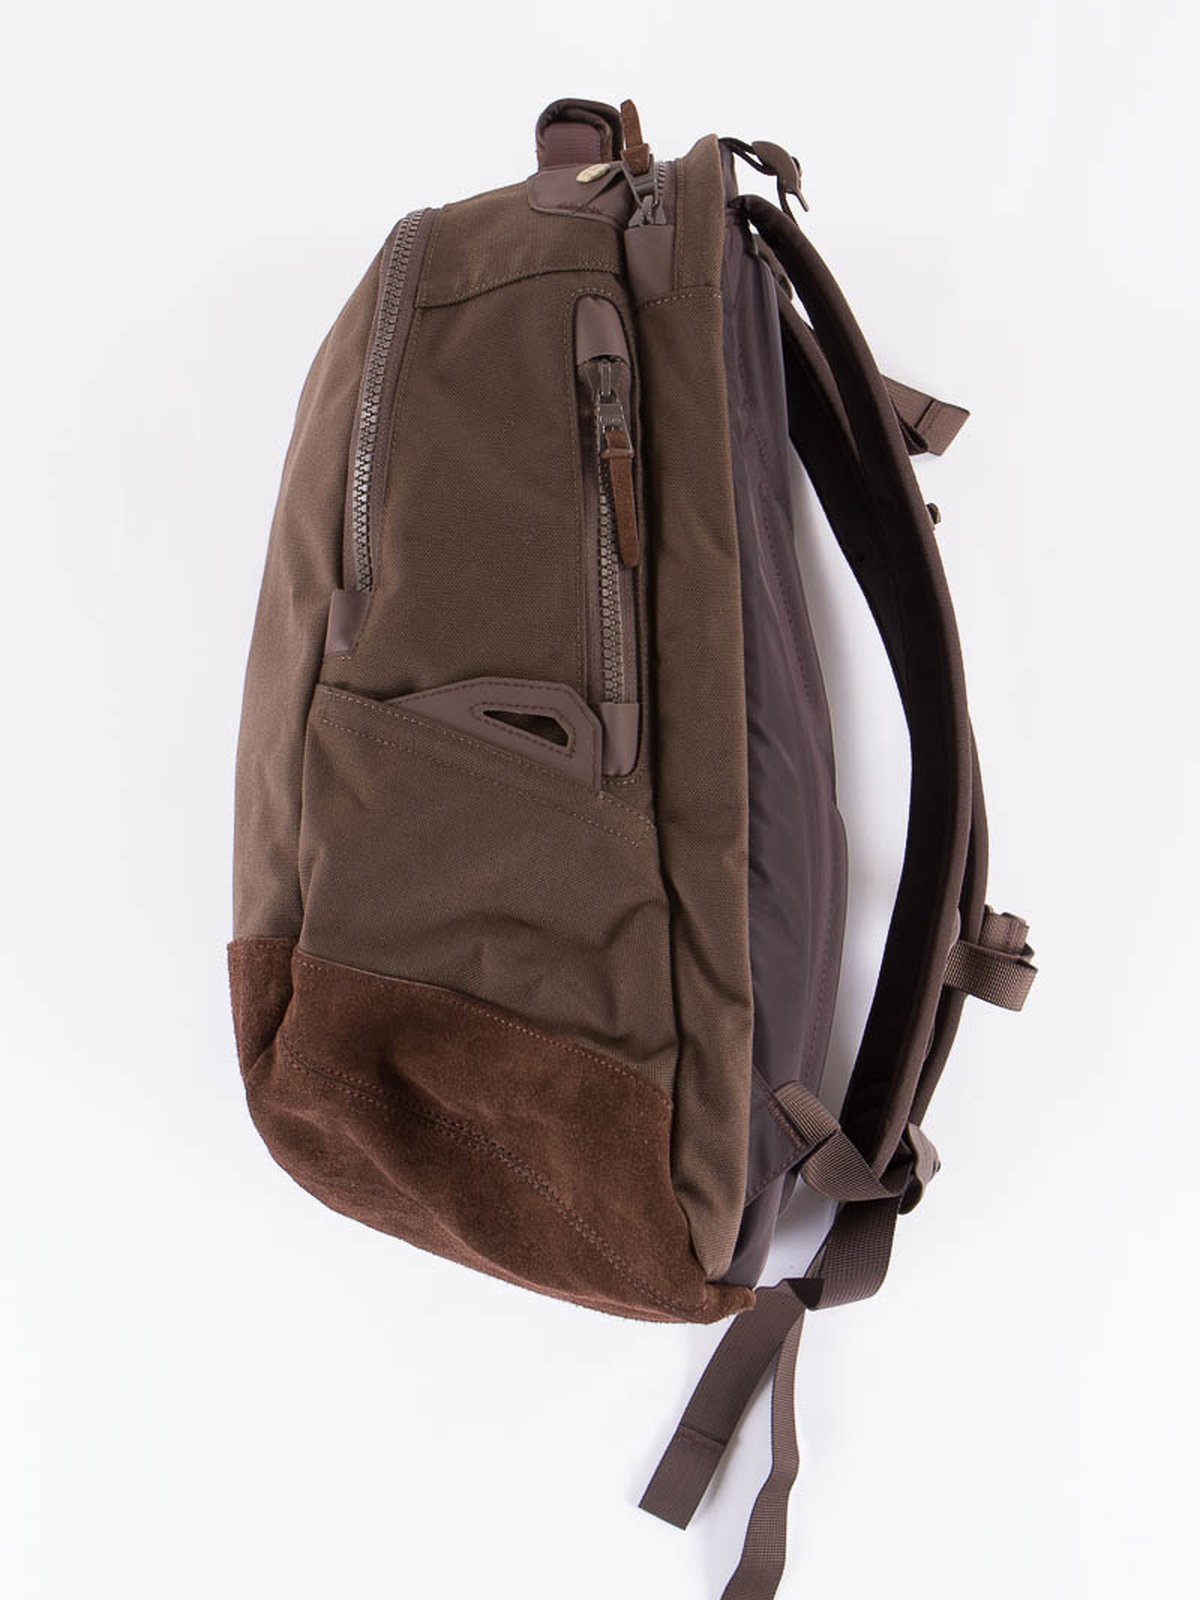 Brown 20L Cordura Backpack - Image 4